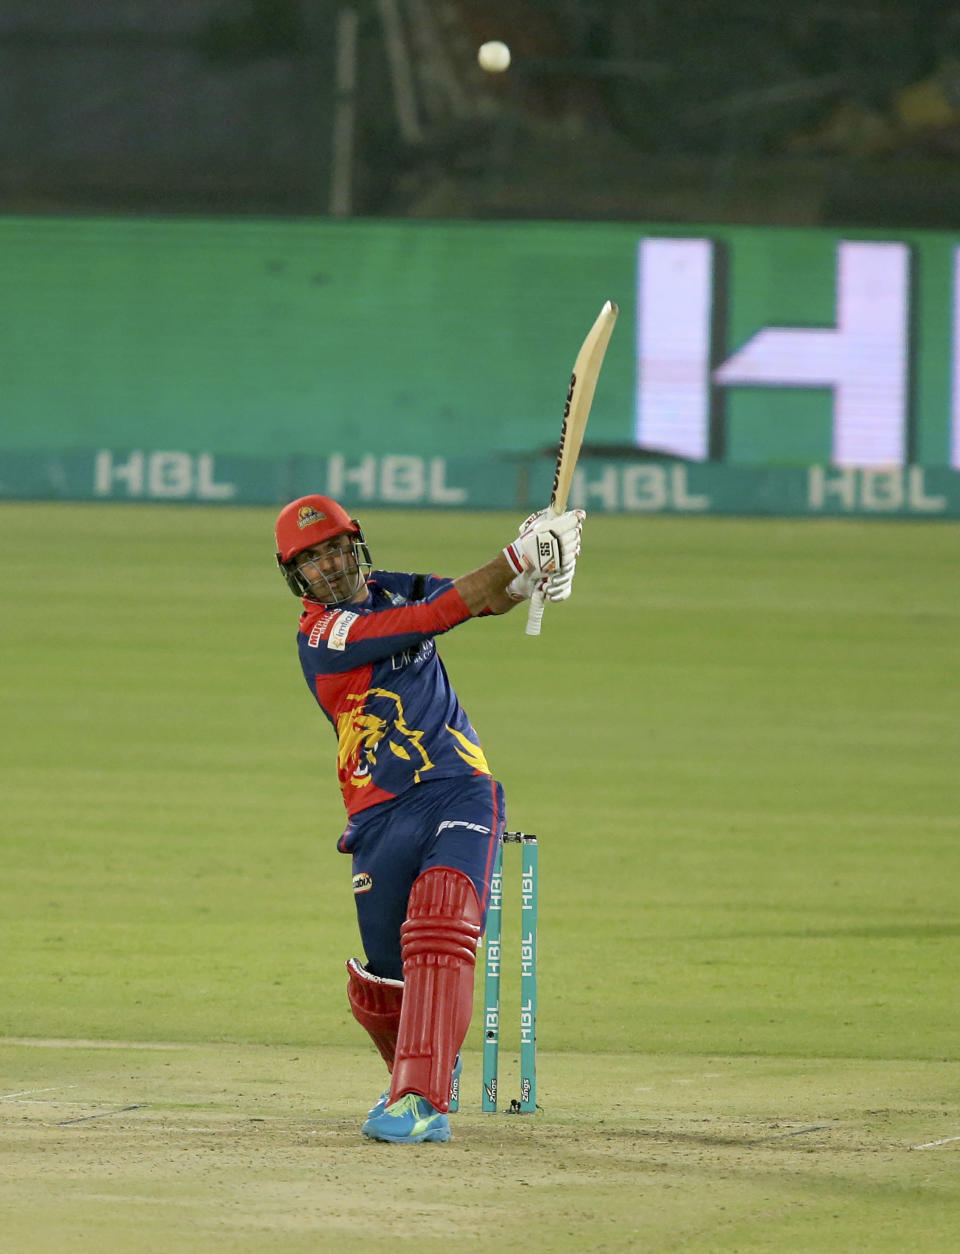 Karachi Kings Mohammad Nabi plays a shot for six during a Pakistan Super League T20 cricket match between Karachi Kings and Quetta Gladiators at National Stadium, in Karachi, Pakistan, Saturday, Feb. 20 2021. (AP Photo/Fareed Khan)